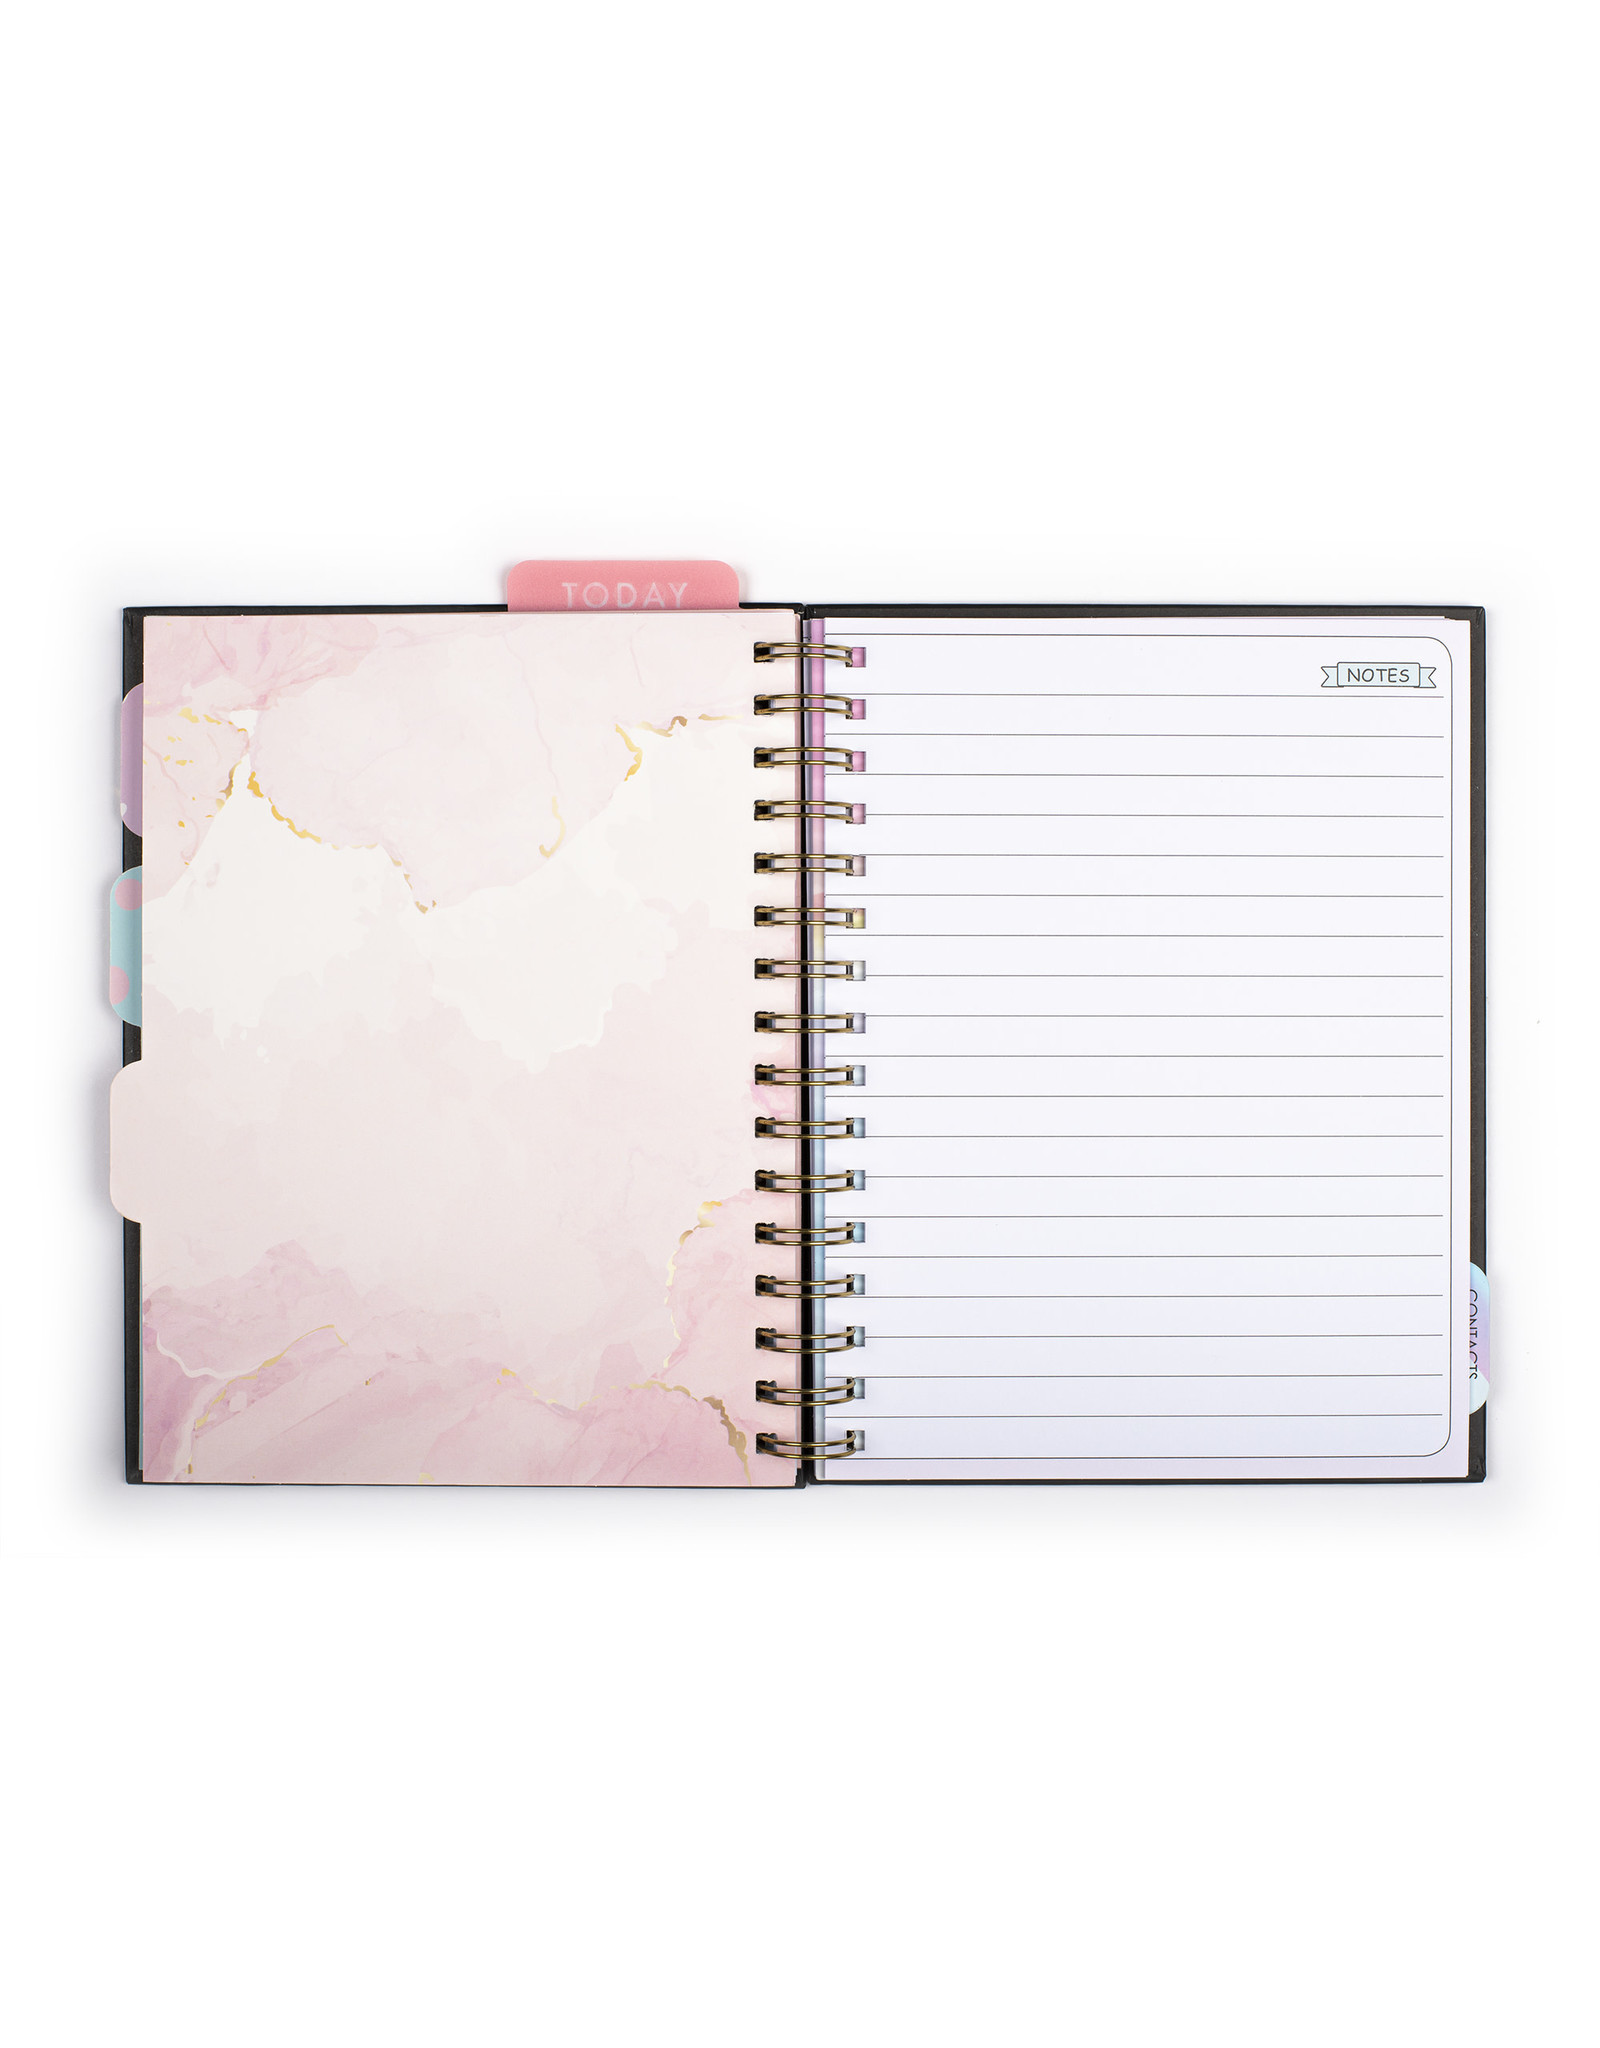 Tri Coastal diary (12 months) with rings 'everyday is your day'